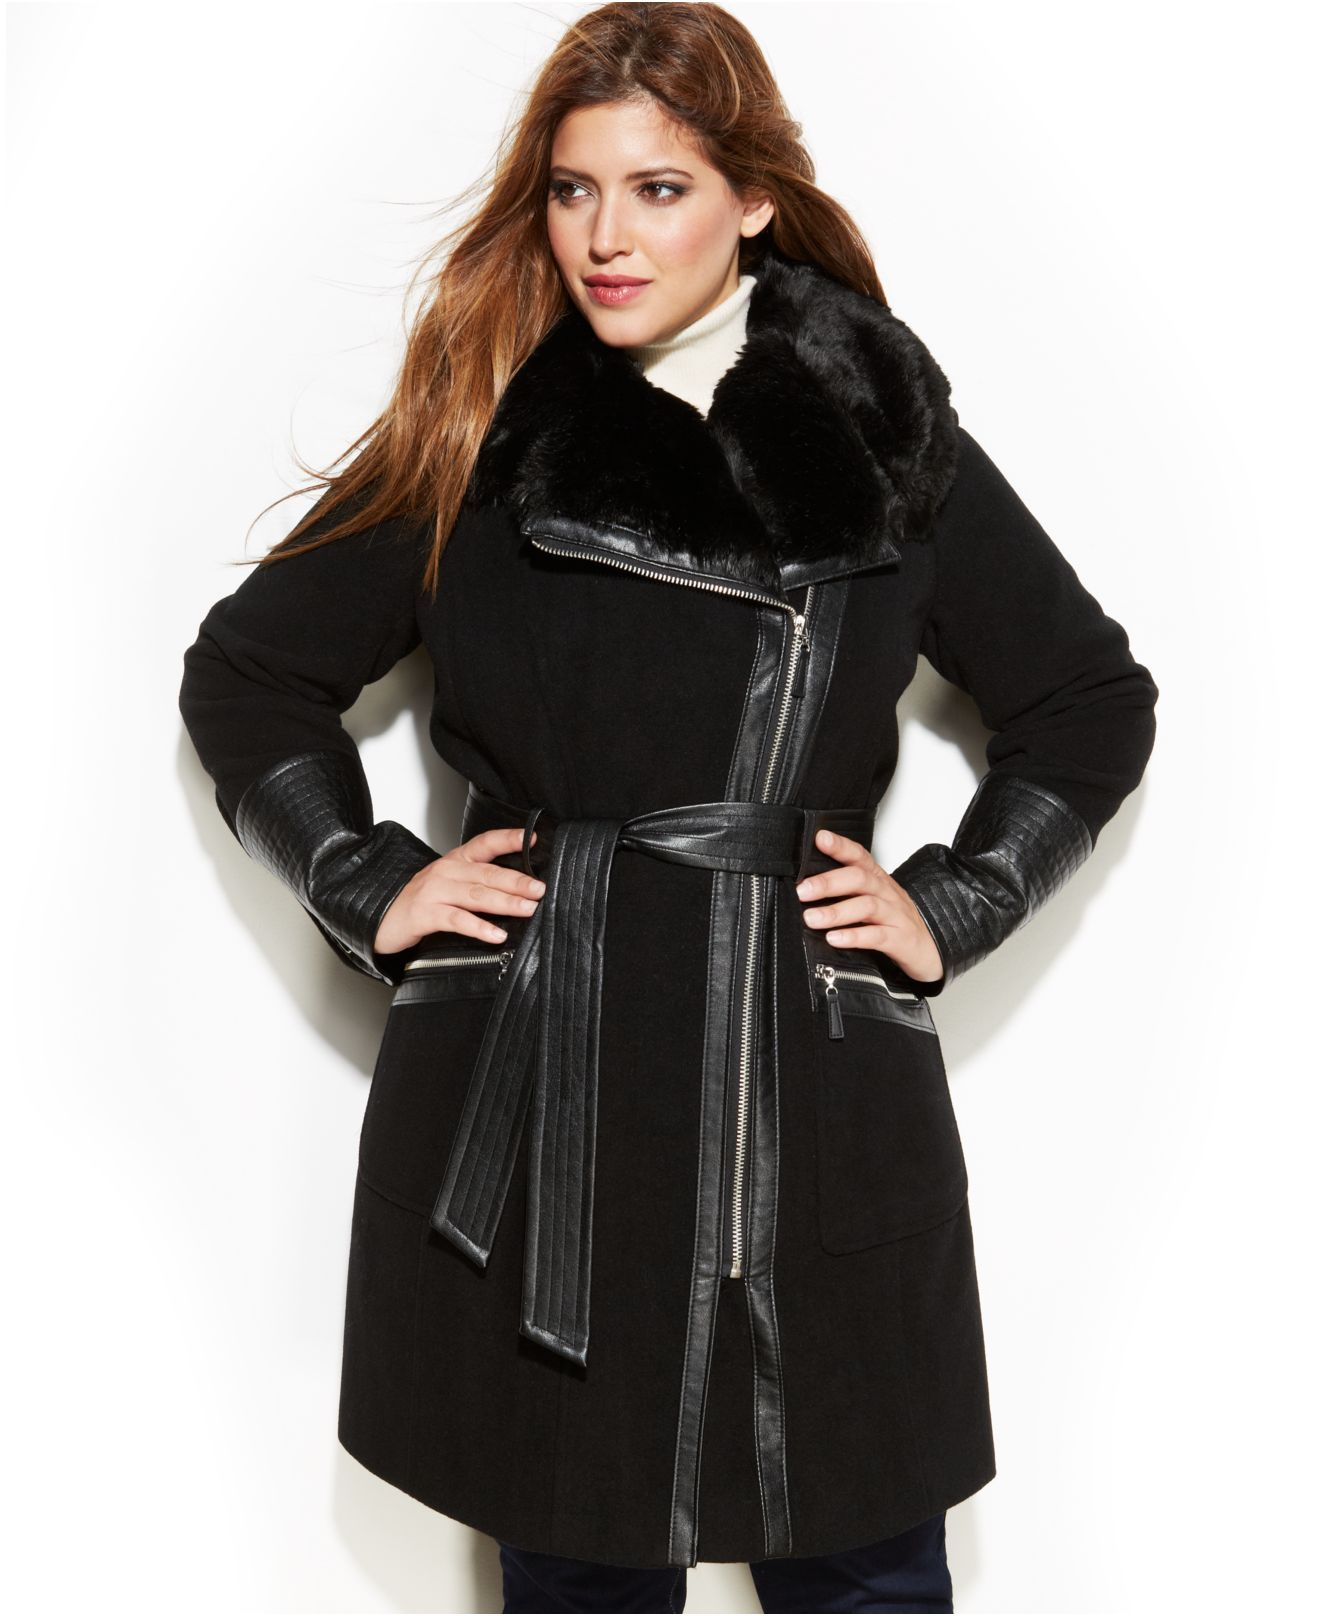 Plus size coats with fur trim